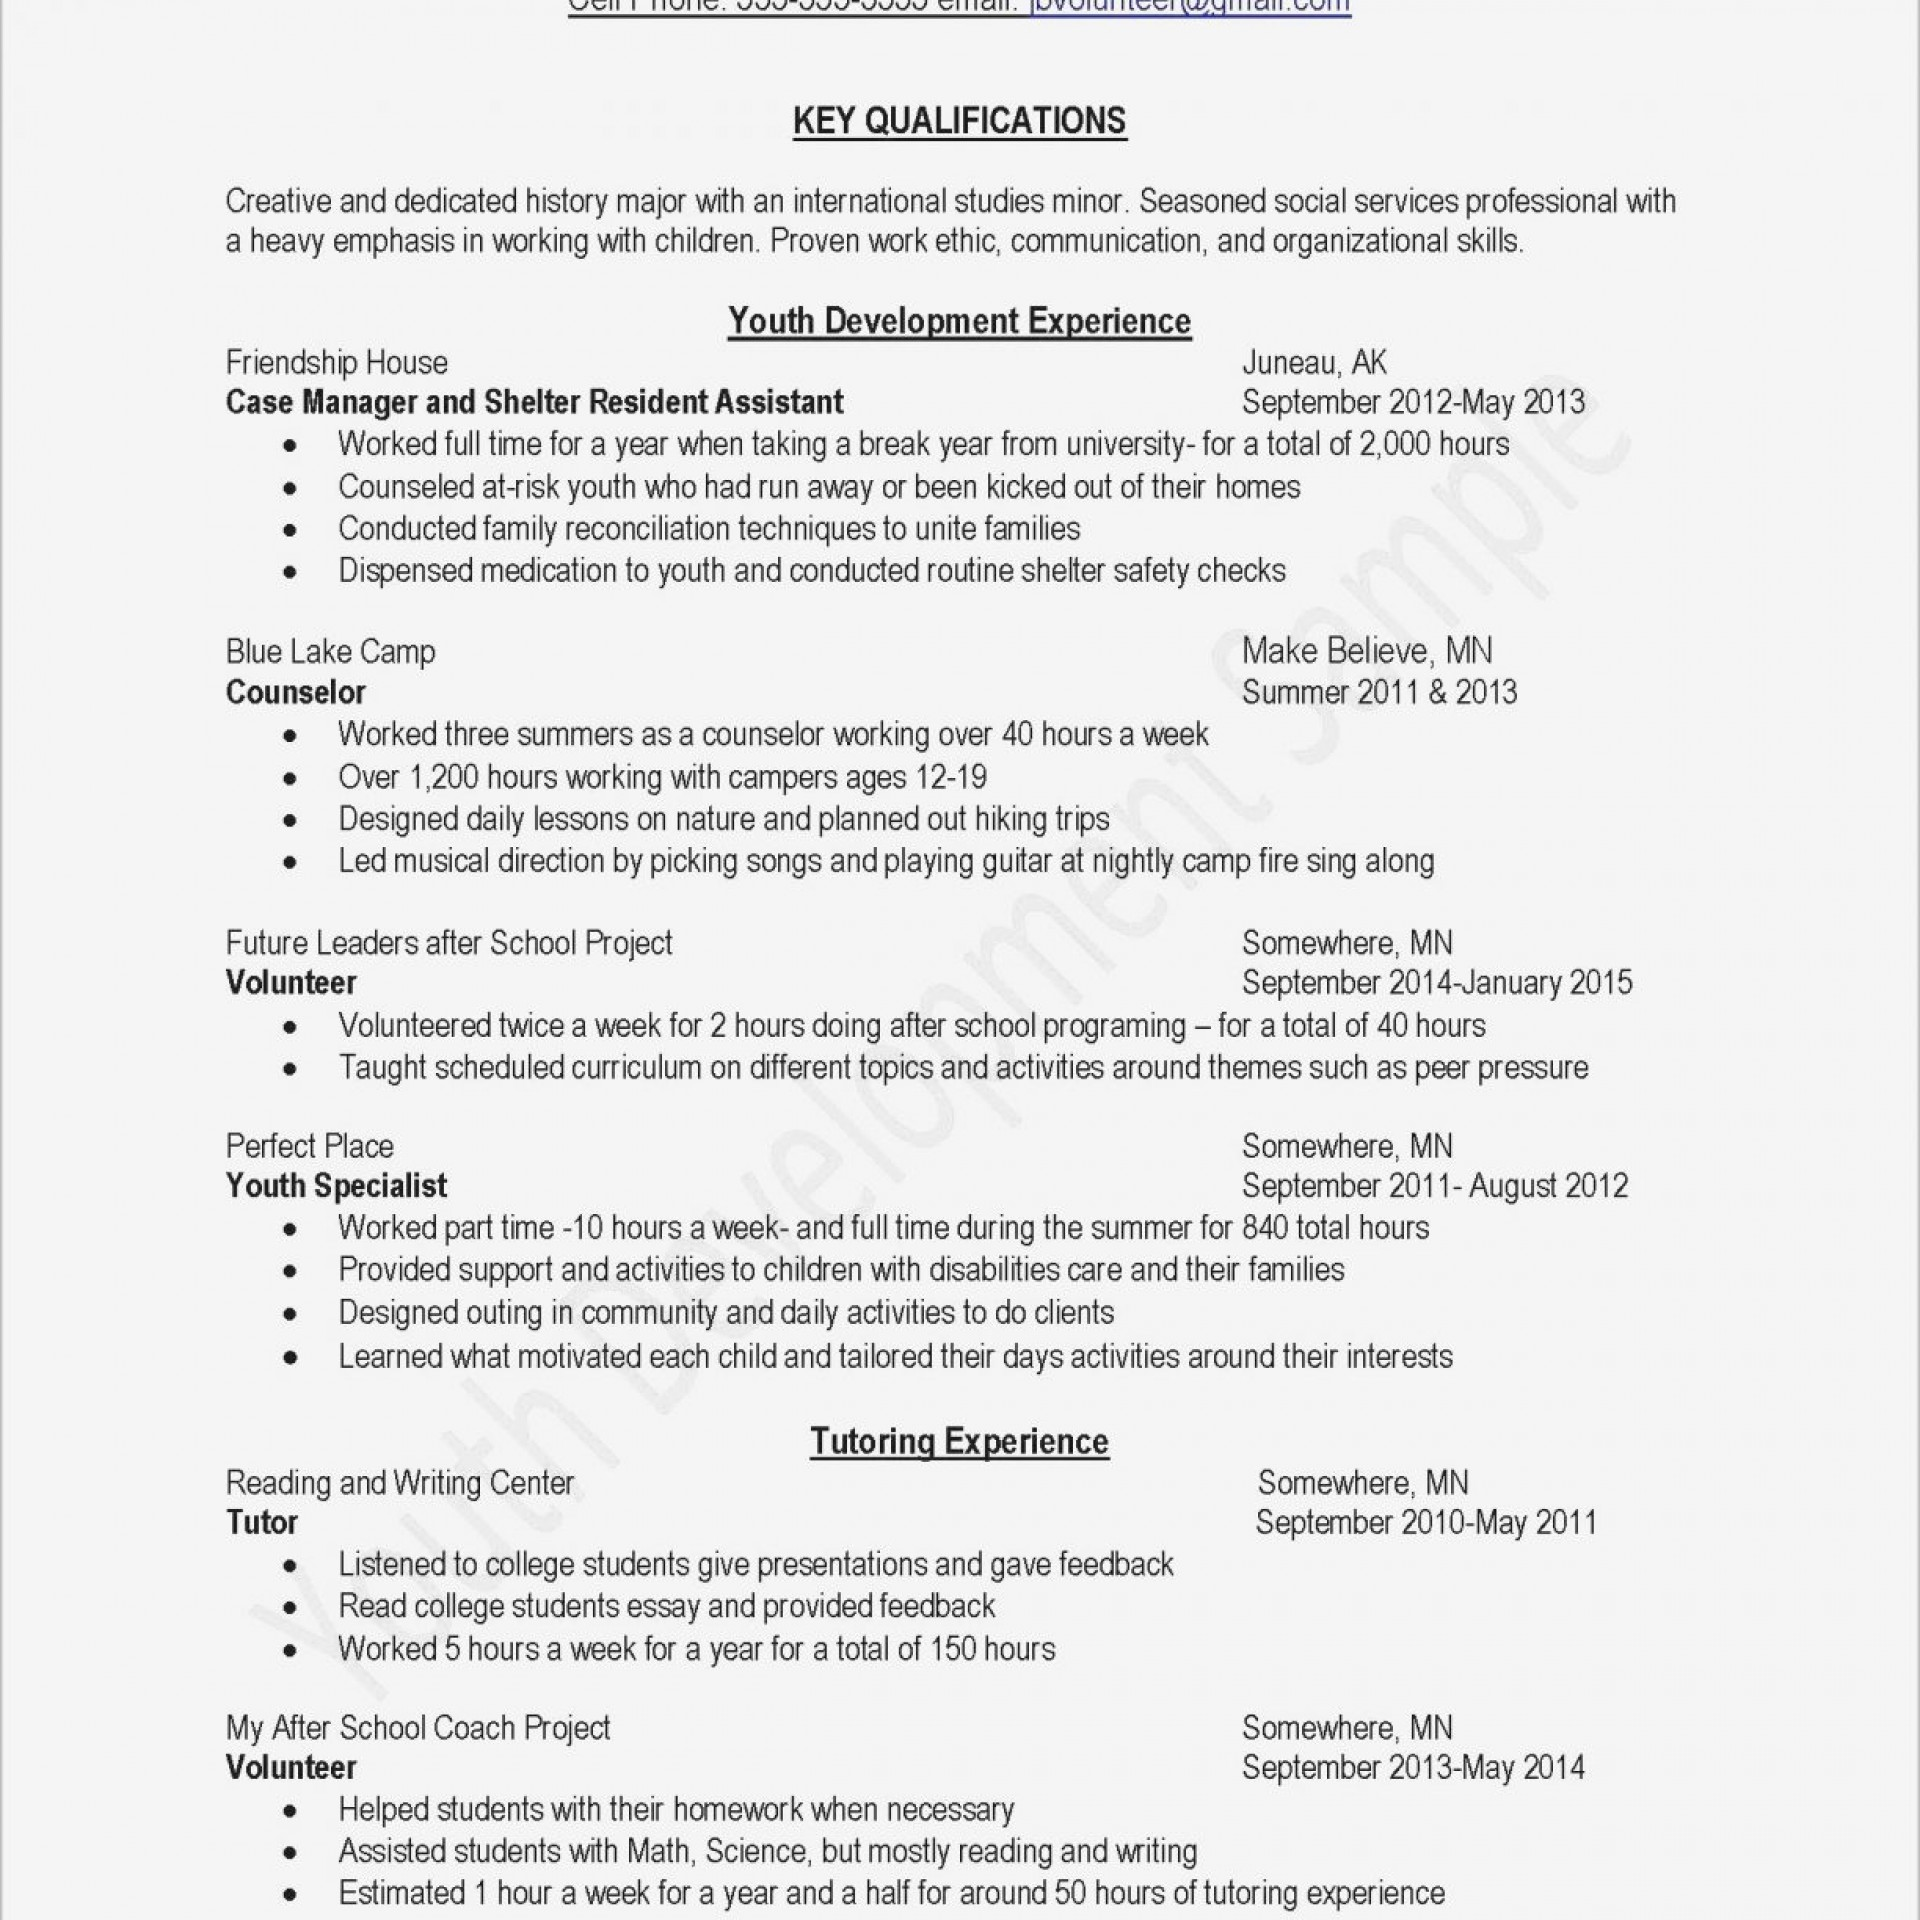 012 Free Resume Templates Pdf Download Samplesormat Or Doc Builder Easy 1224x1224 Essay Example Anarchism And Other Incredible Essays Emma Goldman Summary Mla Citation 1920